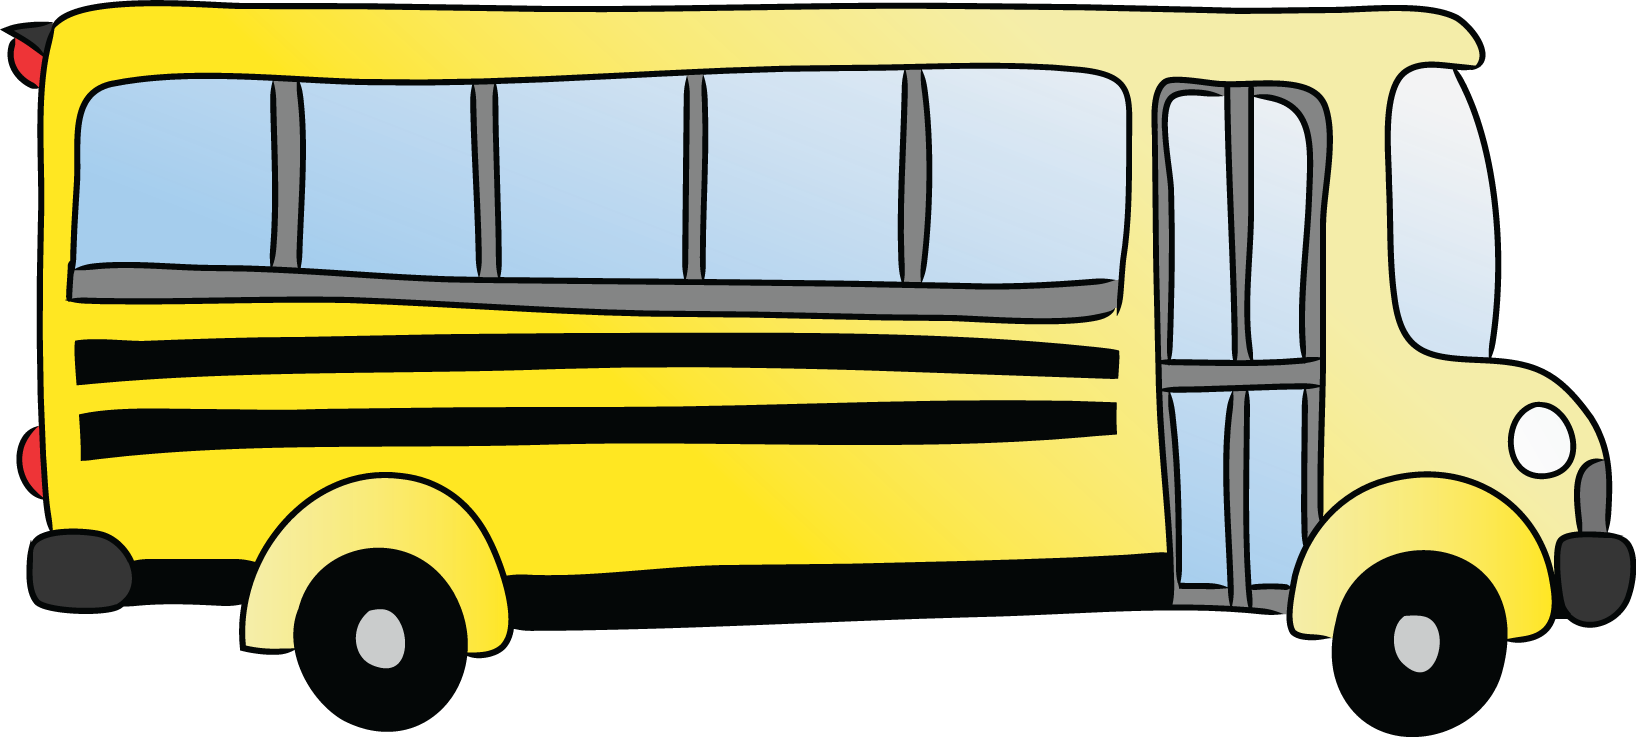 1636x737 City Bus Side View Png Transparent City Bus Side View.png Images